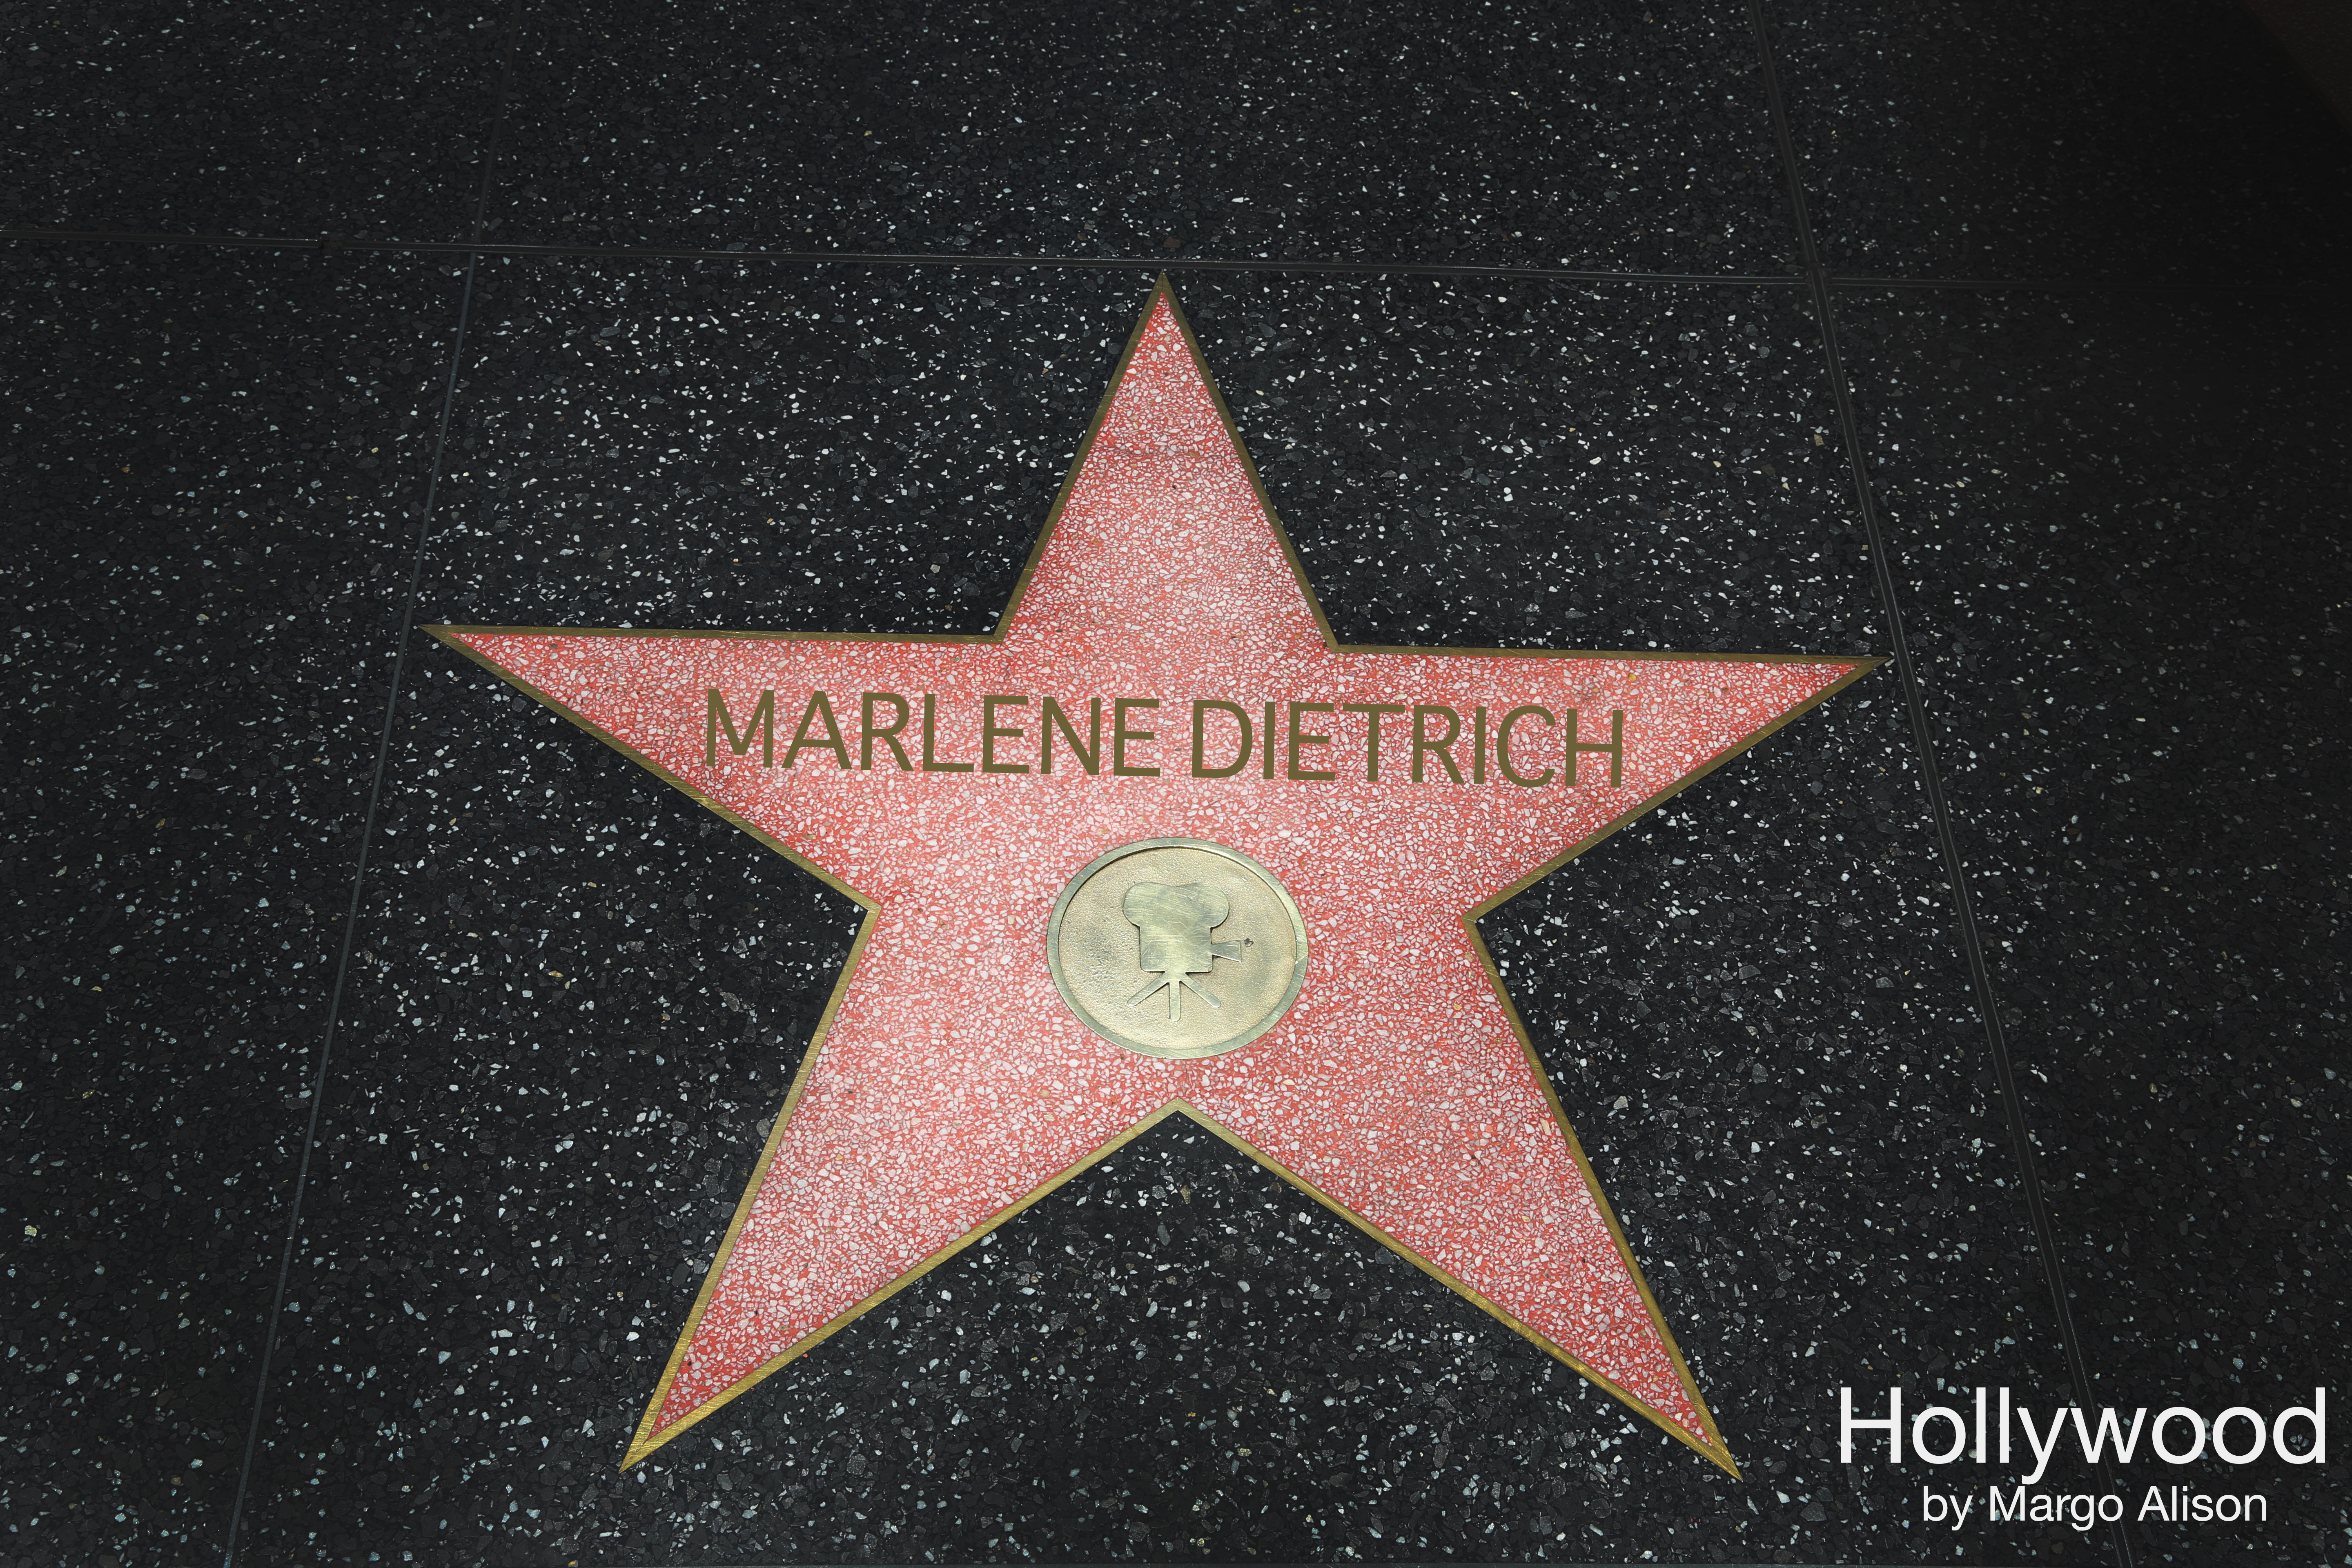 MARLENE DIETRICH hollywood star